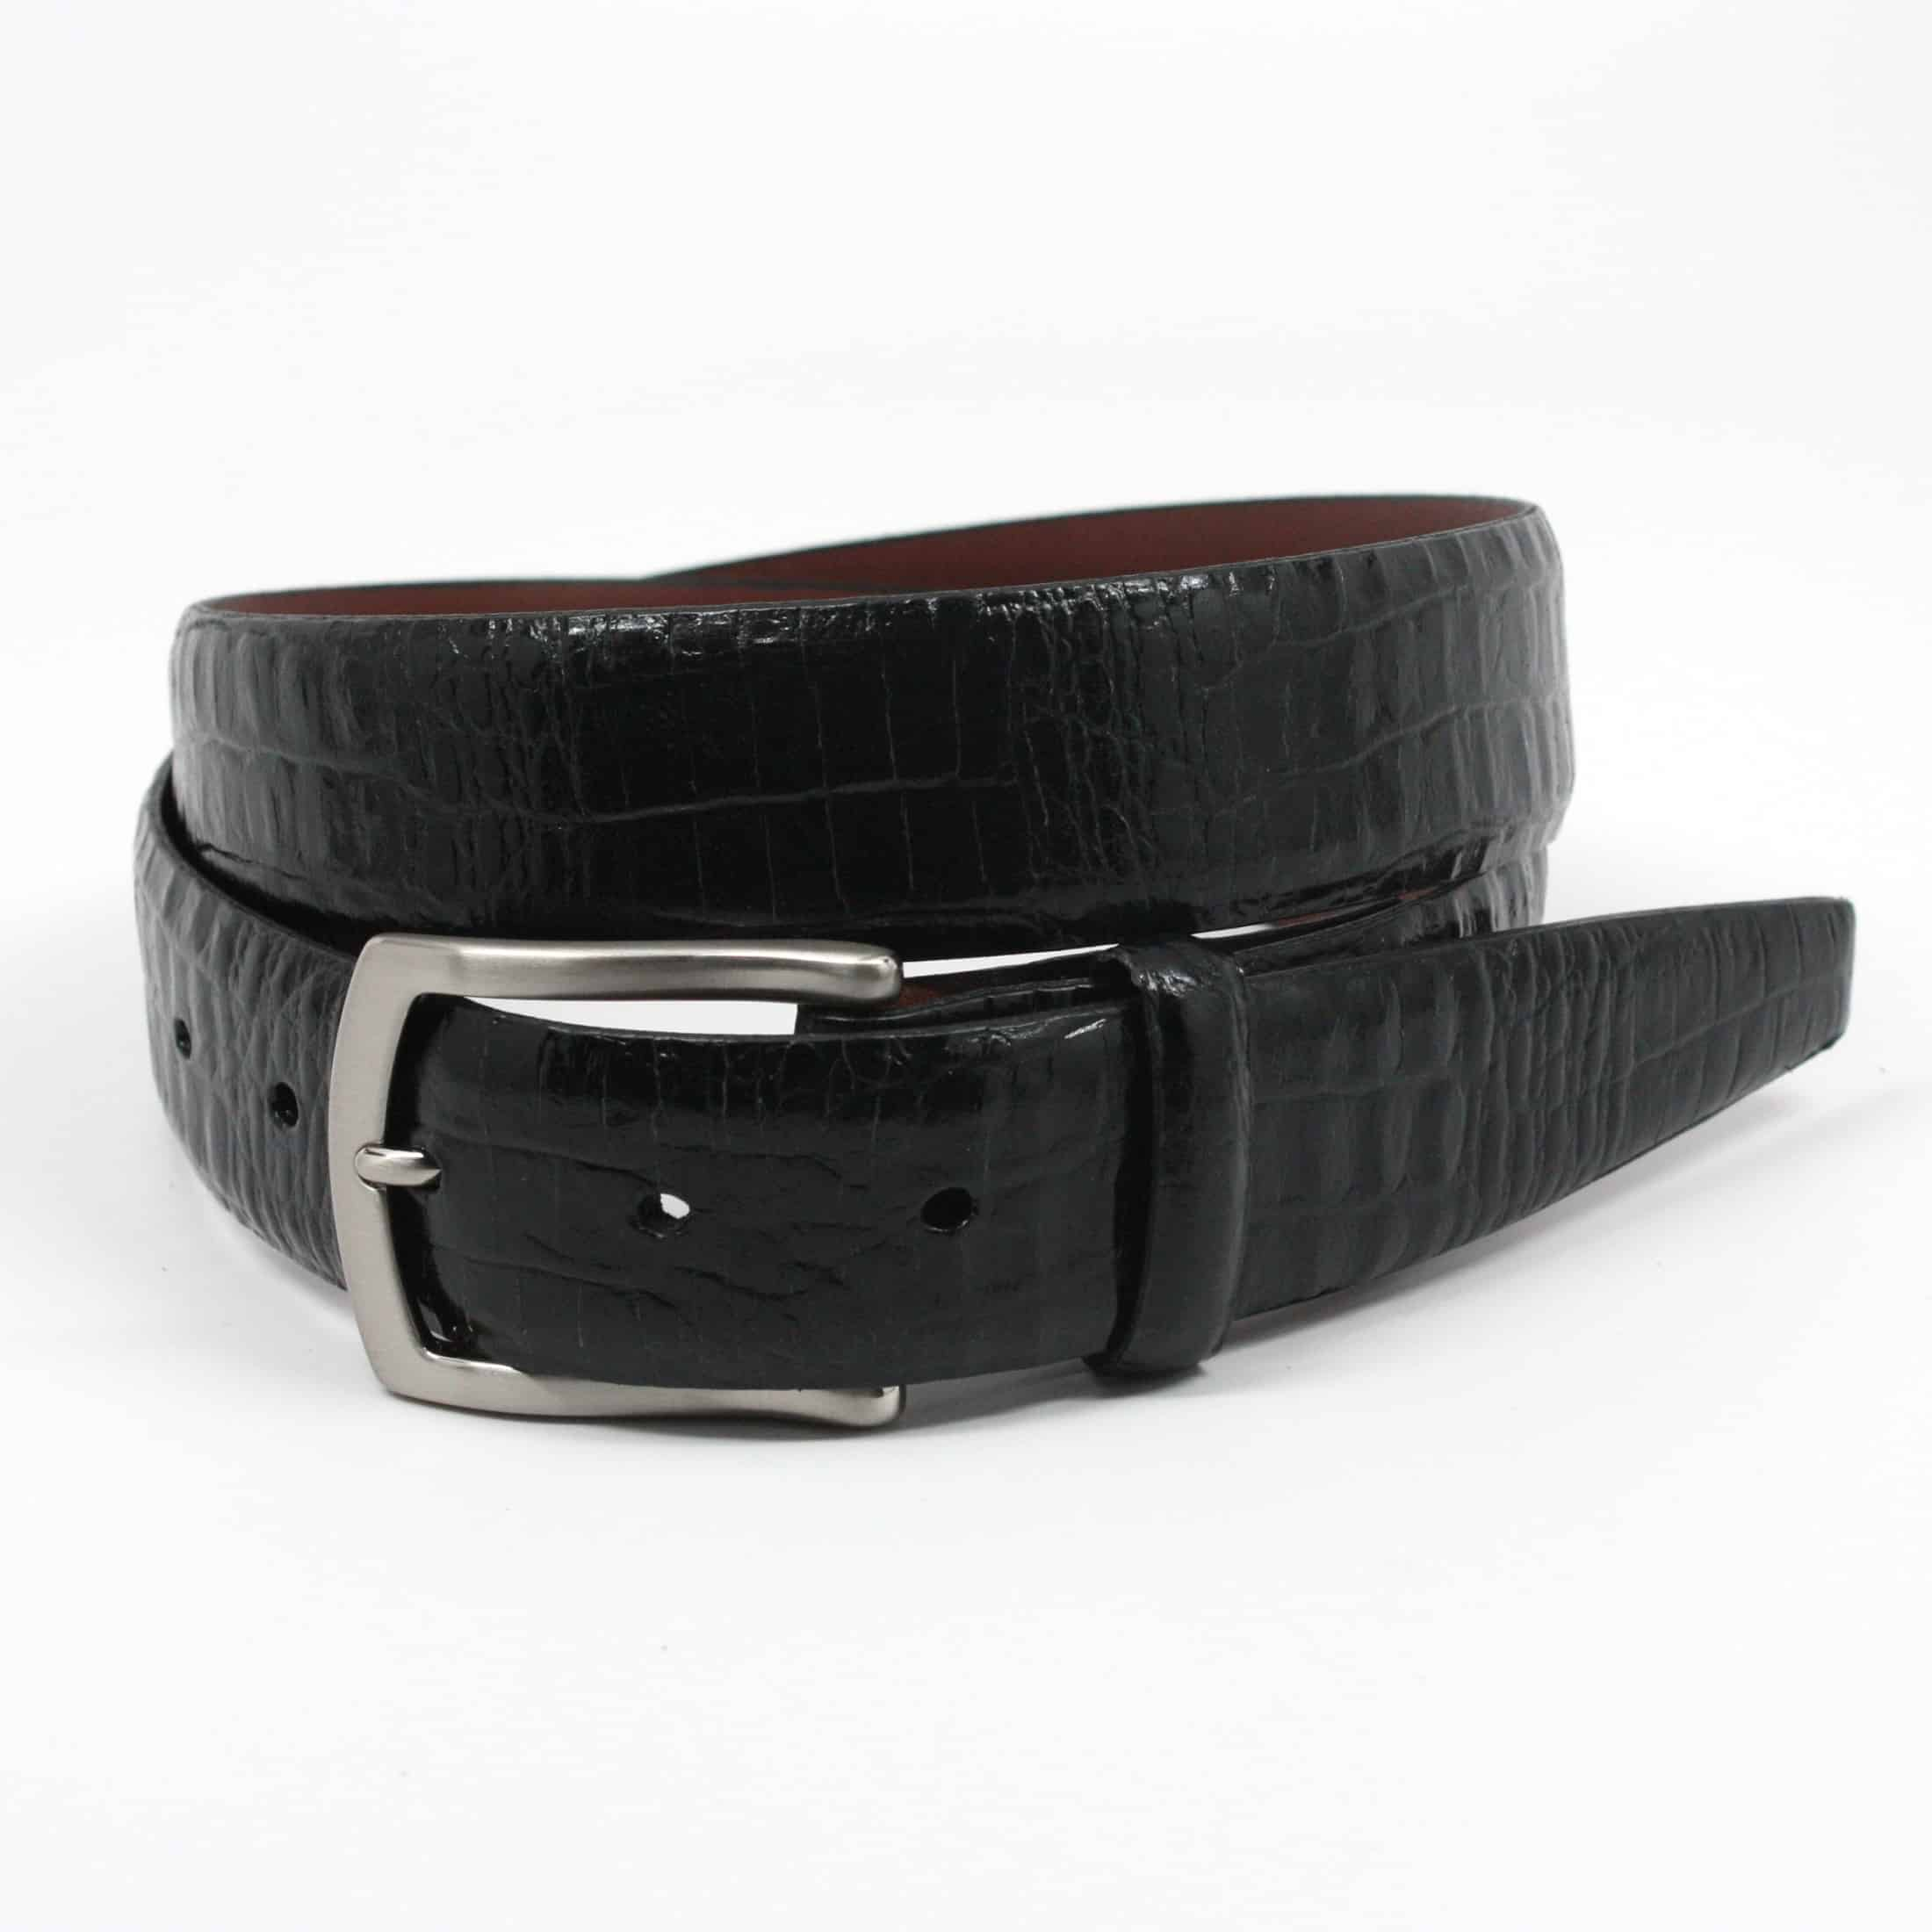 Alligator Embossed Glazed Calfskin Belt - Black,BELT,Gent Row, | GentRow.com